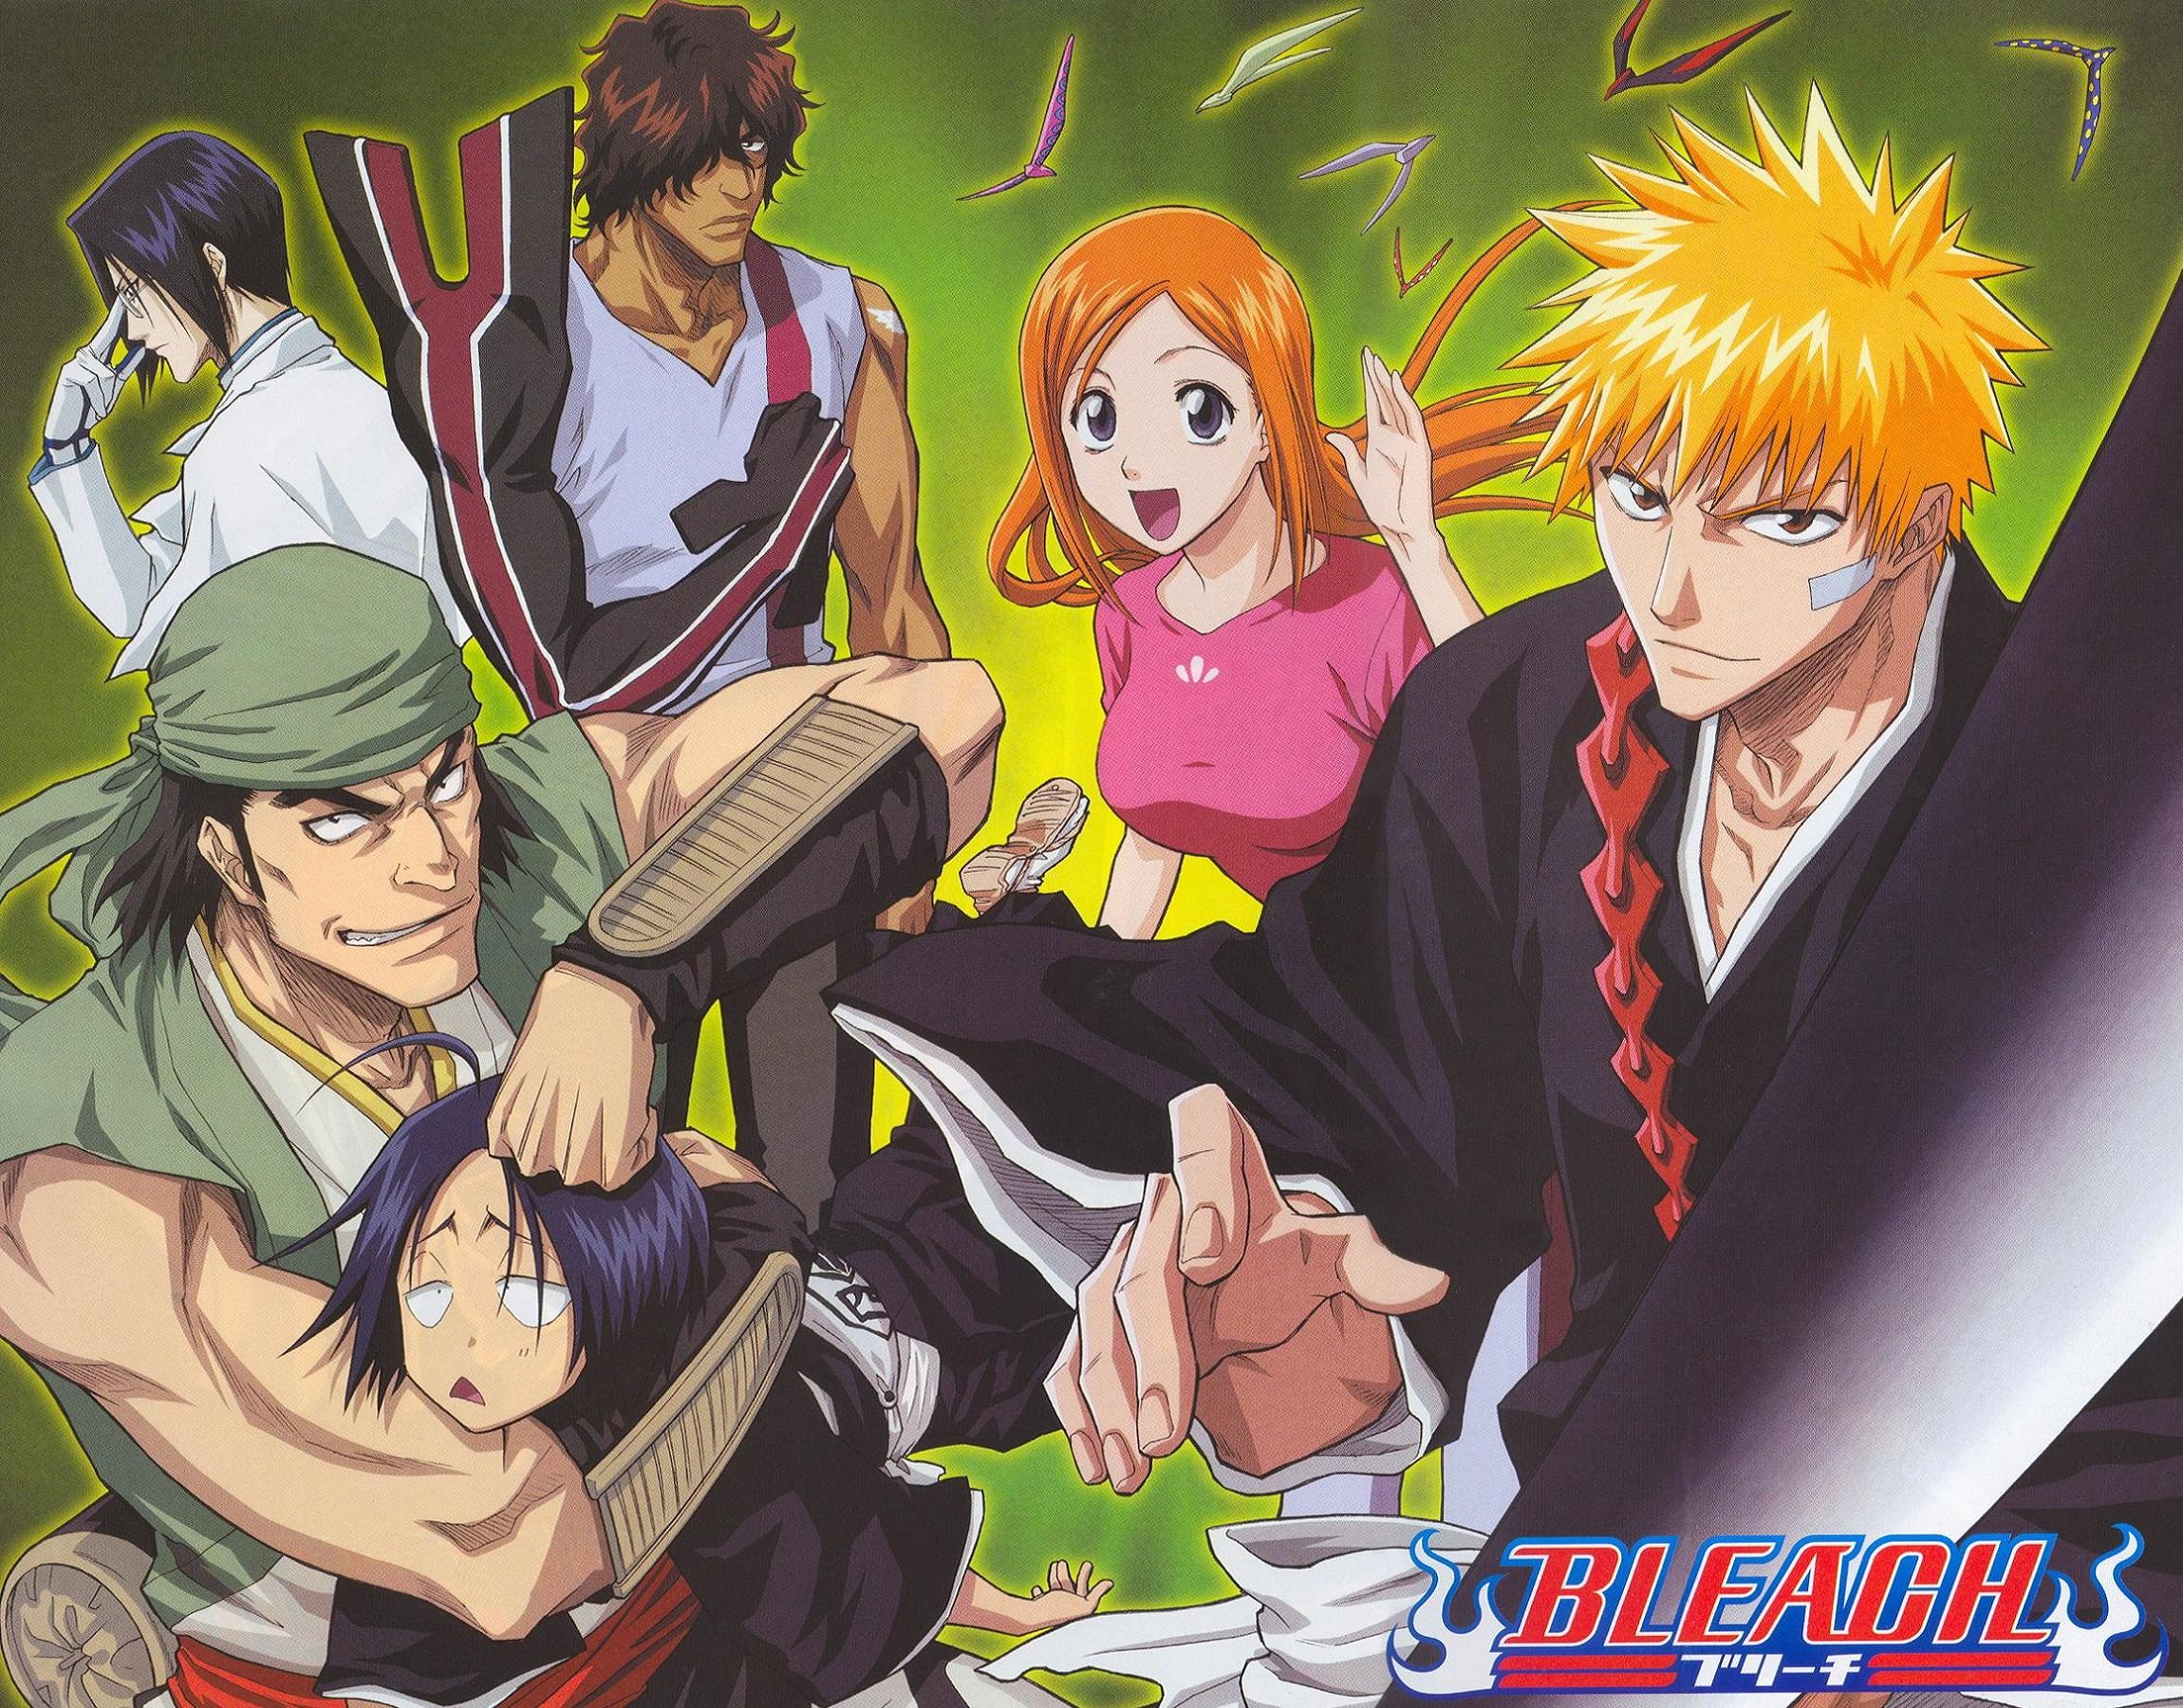 2300x1800 Bleach anime wallpapers group wallpapers bleach poster 02